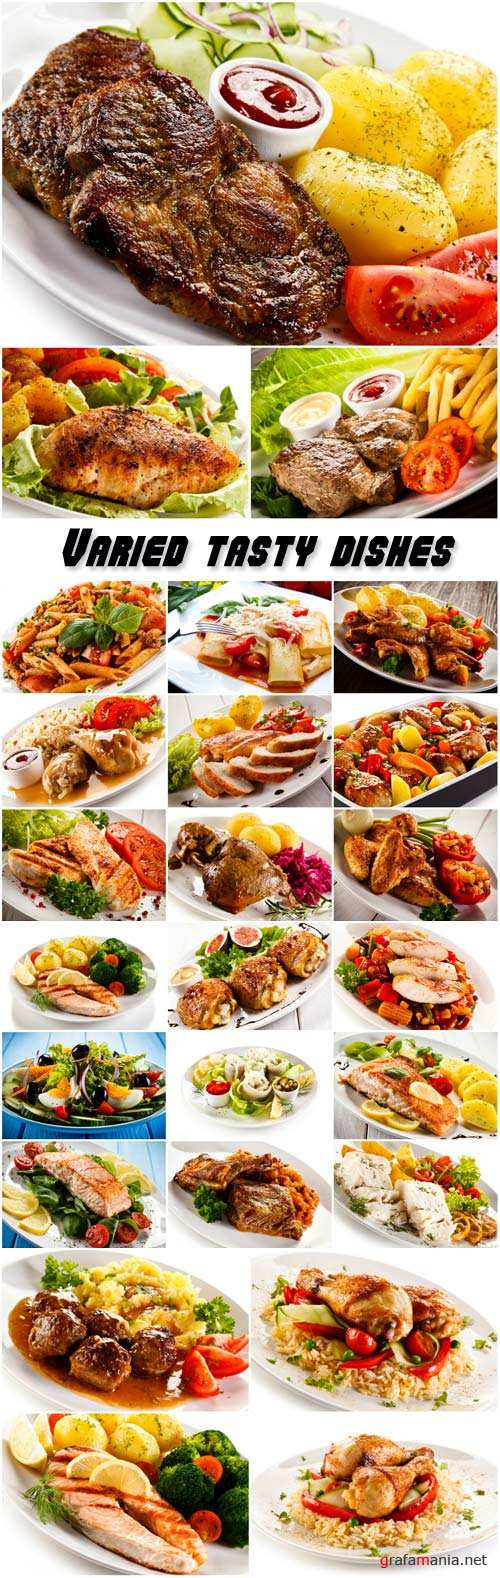 Varied tasty dishes